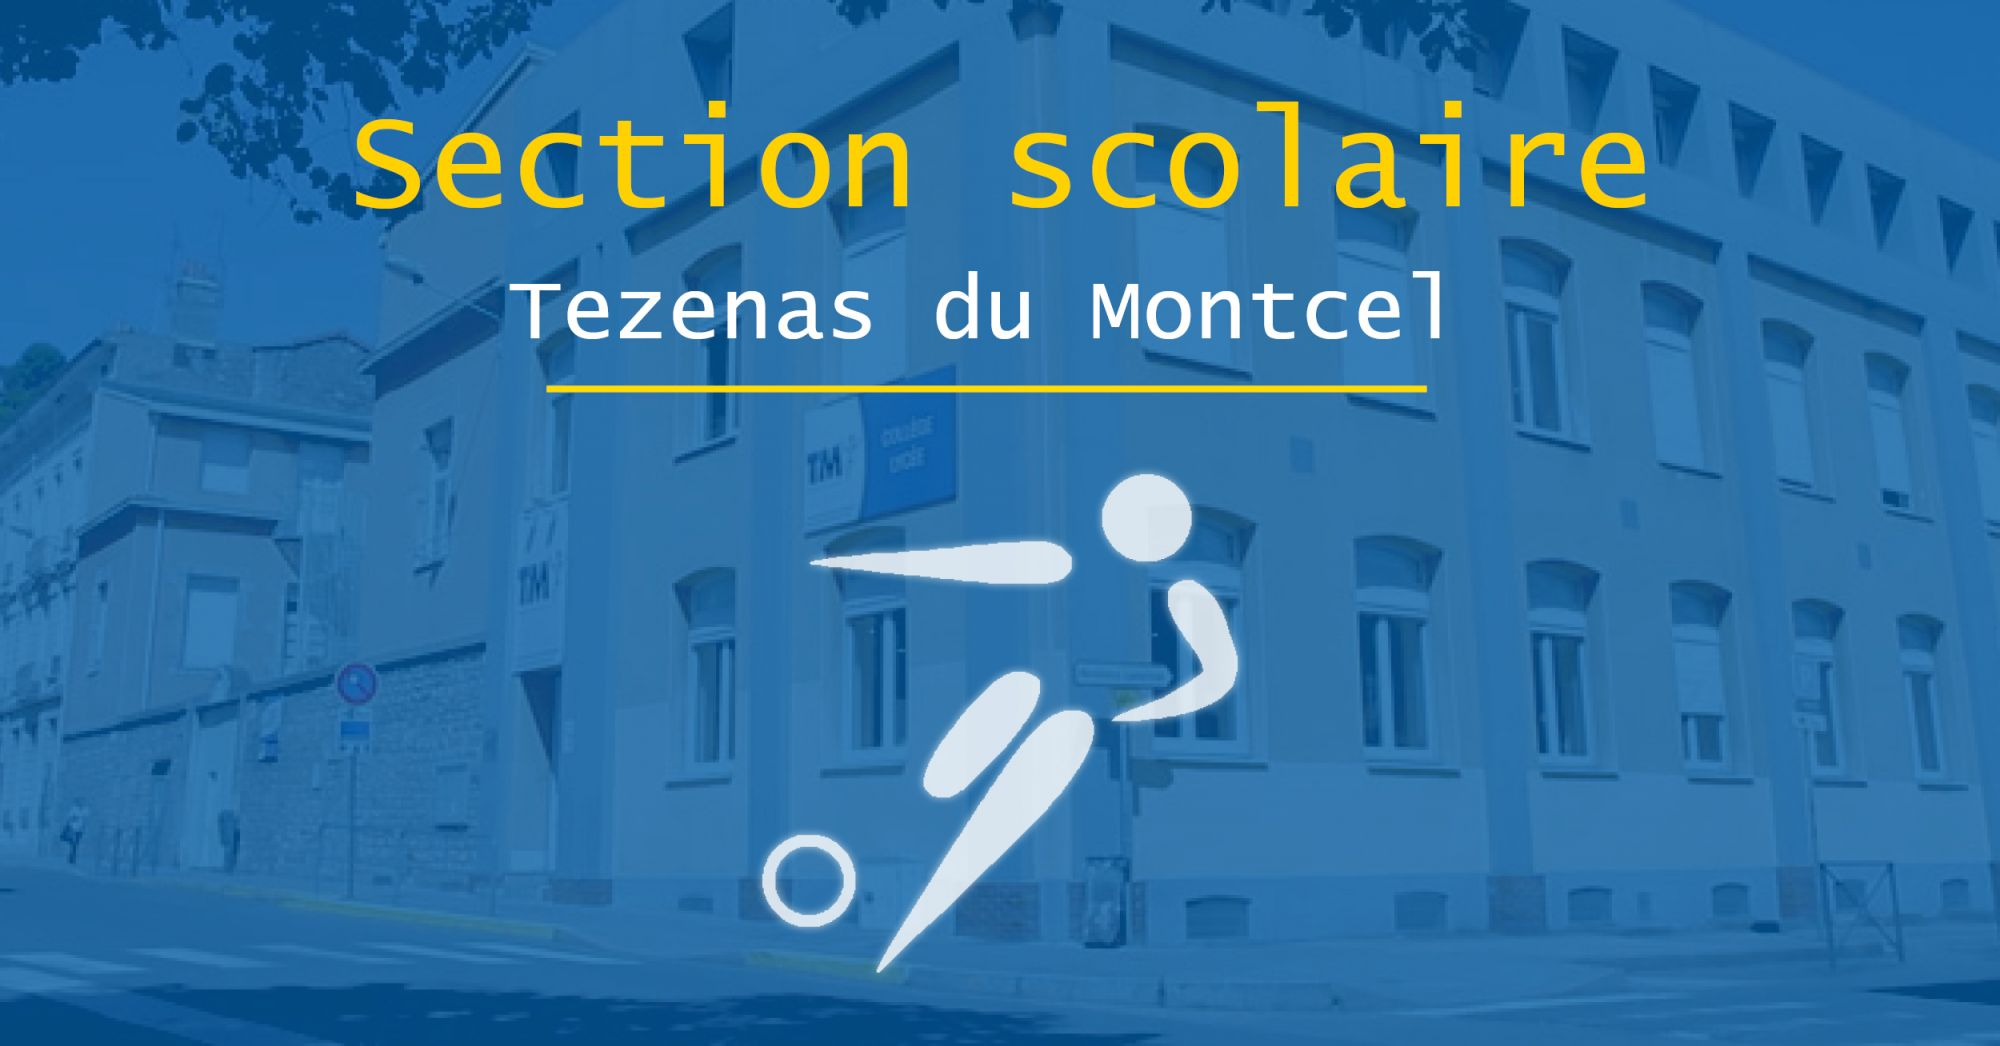 Section scolaire